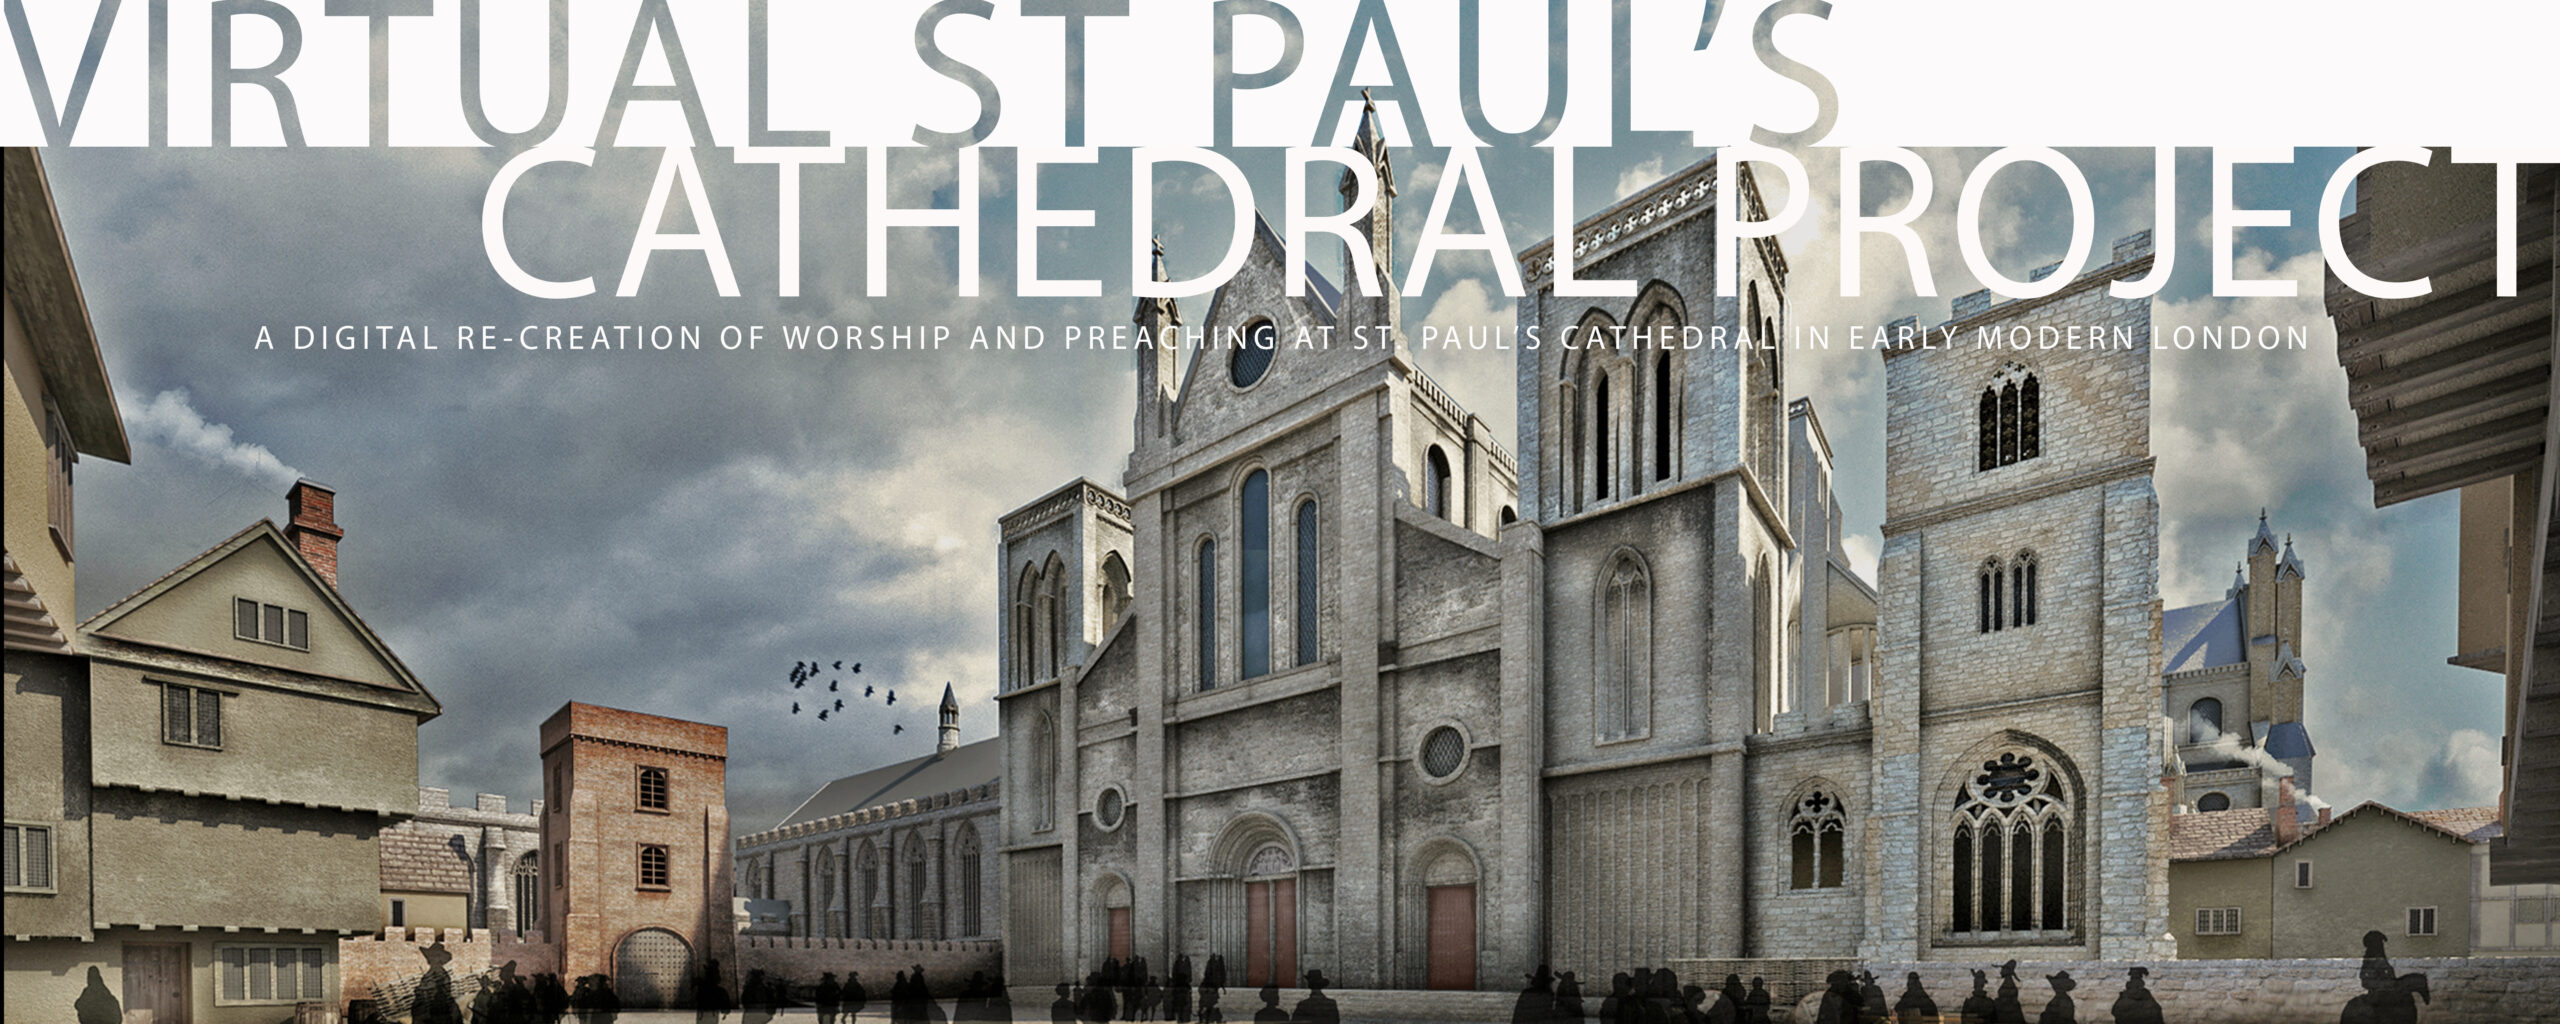 Virtual St. Paul's Cathedral Website